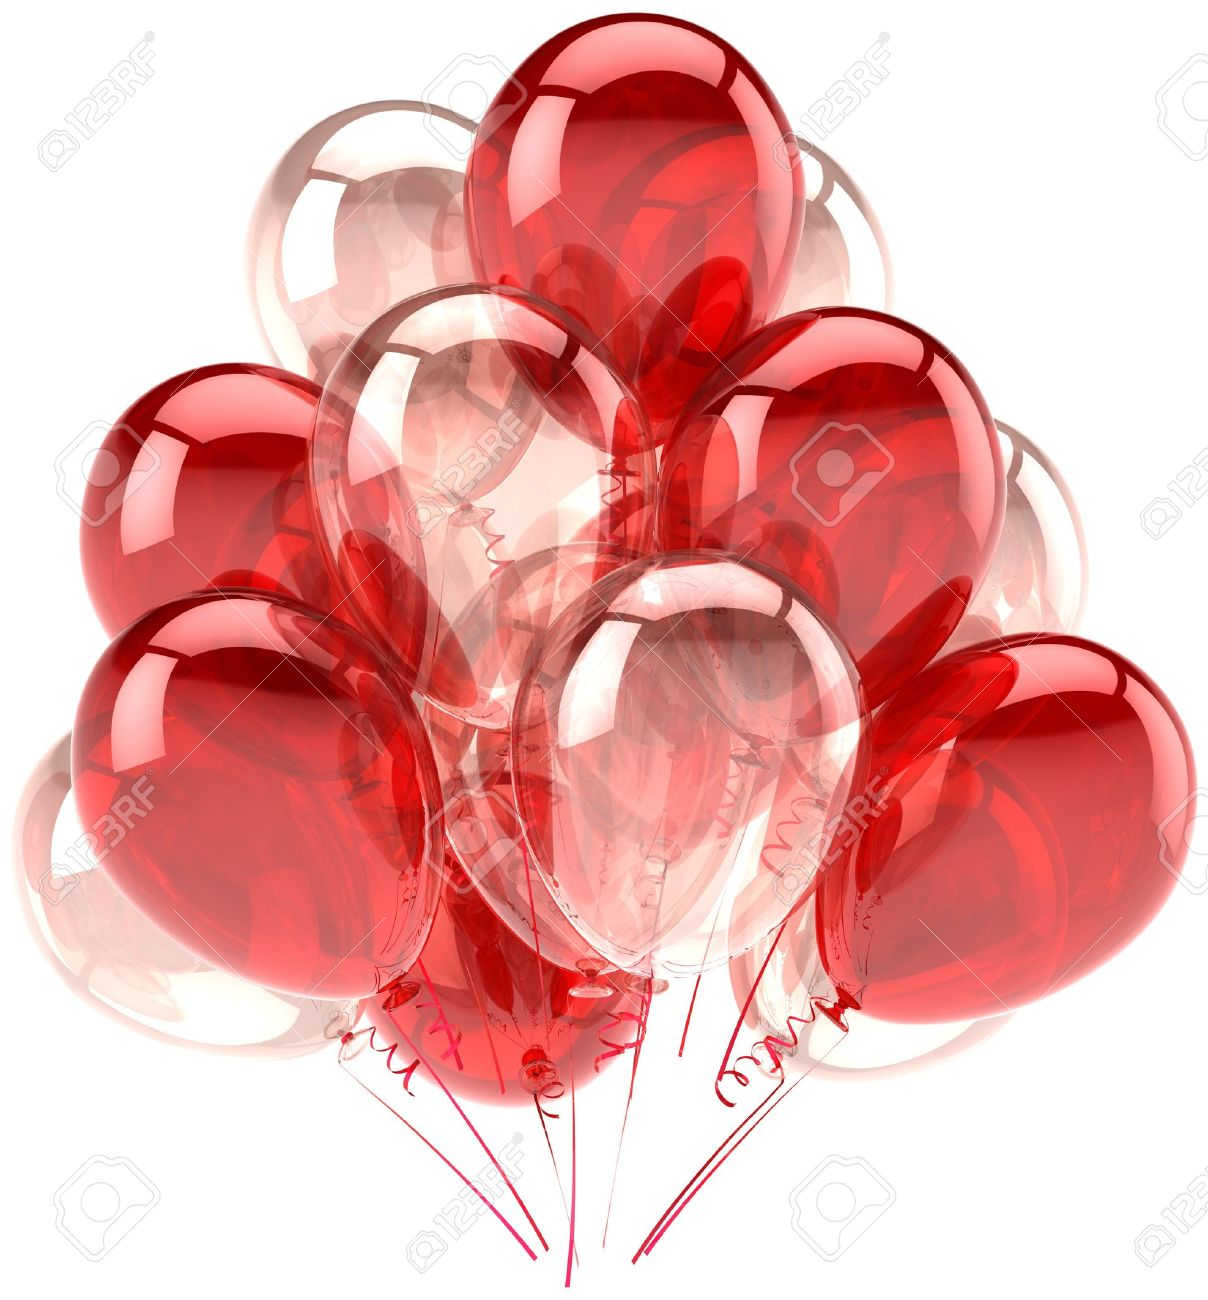 Balloons Party Birthday Red Pink Translucent. Decoration Of.